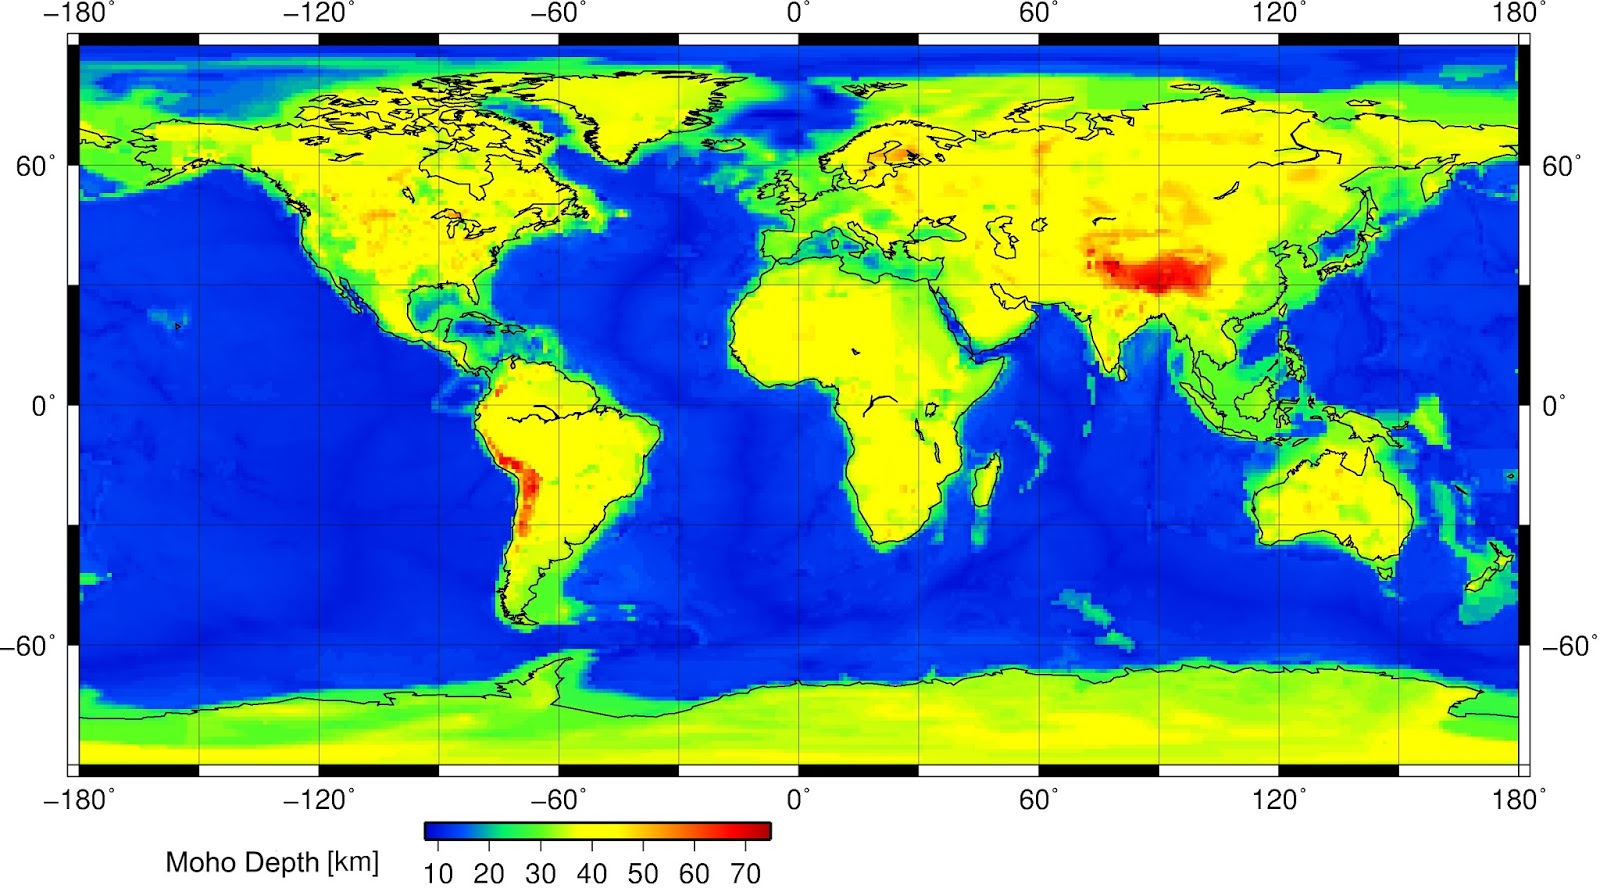 Depth of the Mohorovičić discontinuity (between the Earth's crust and the mantle)